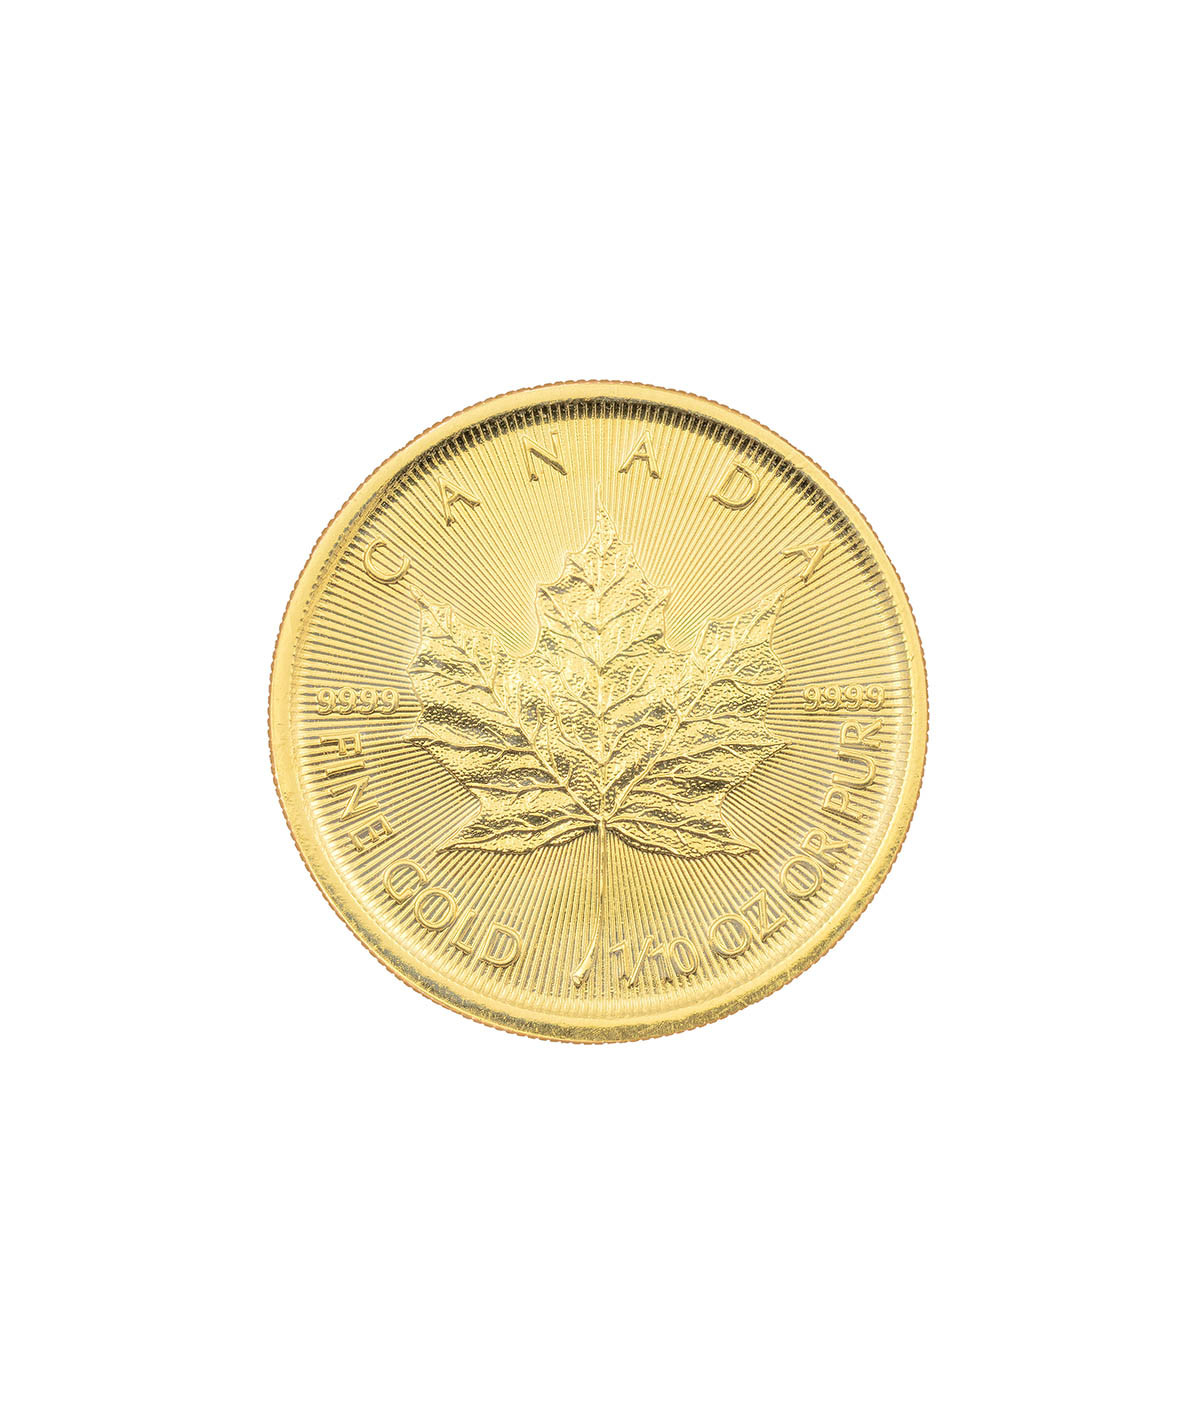 1/10oz Gold Coin Maple Leaf from 2017